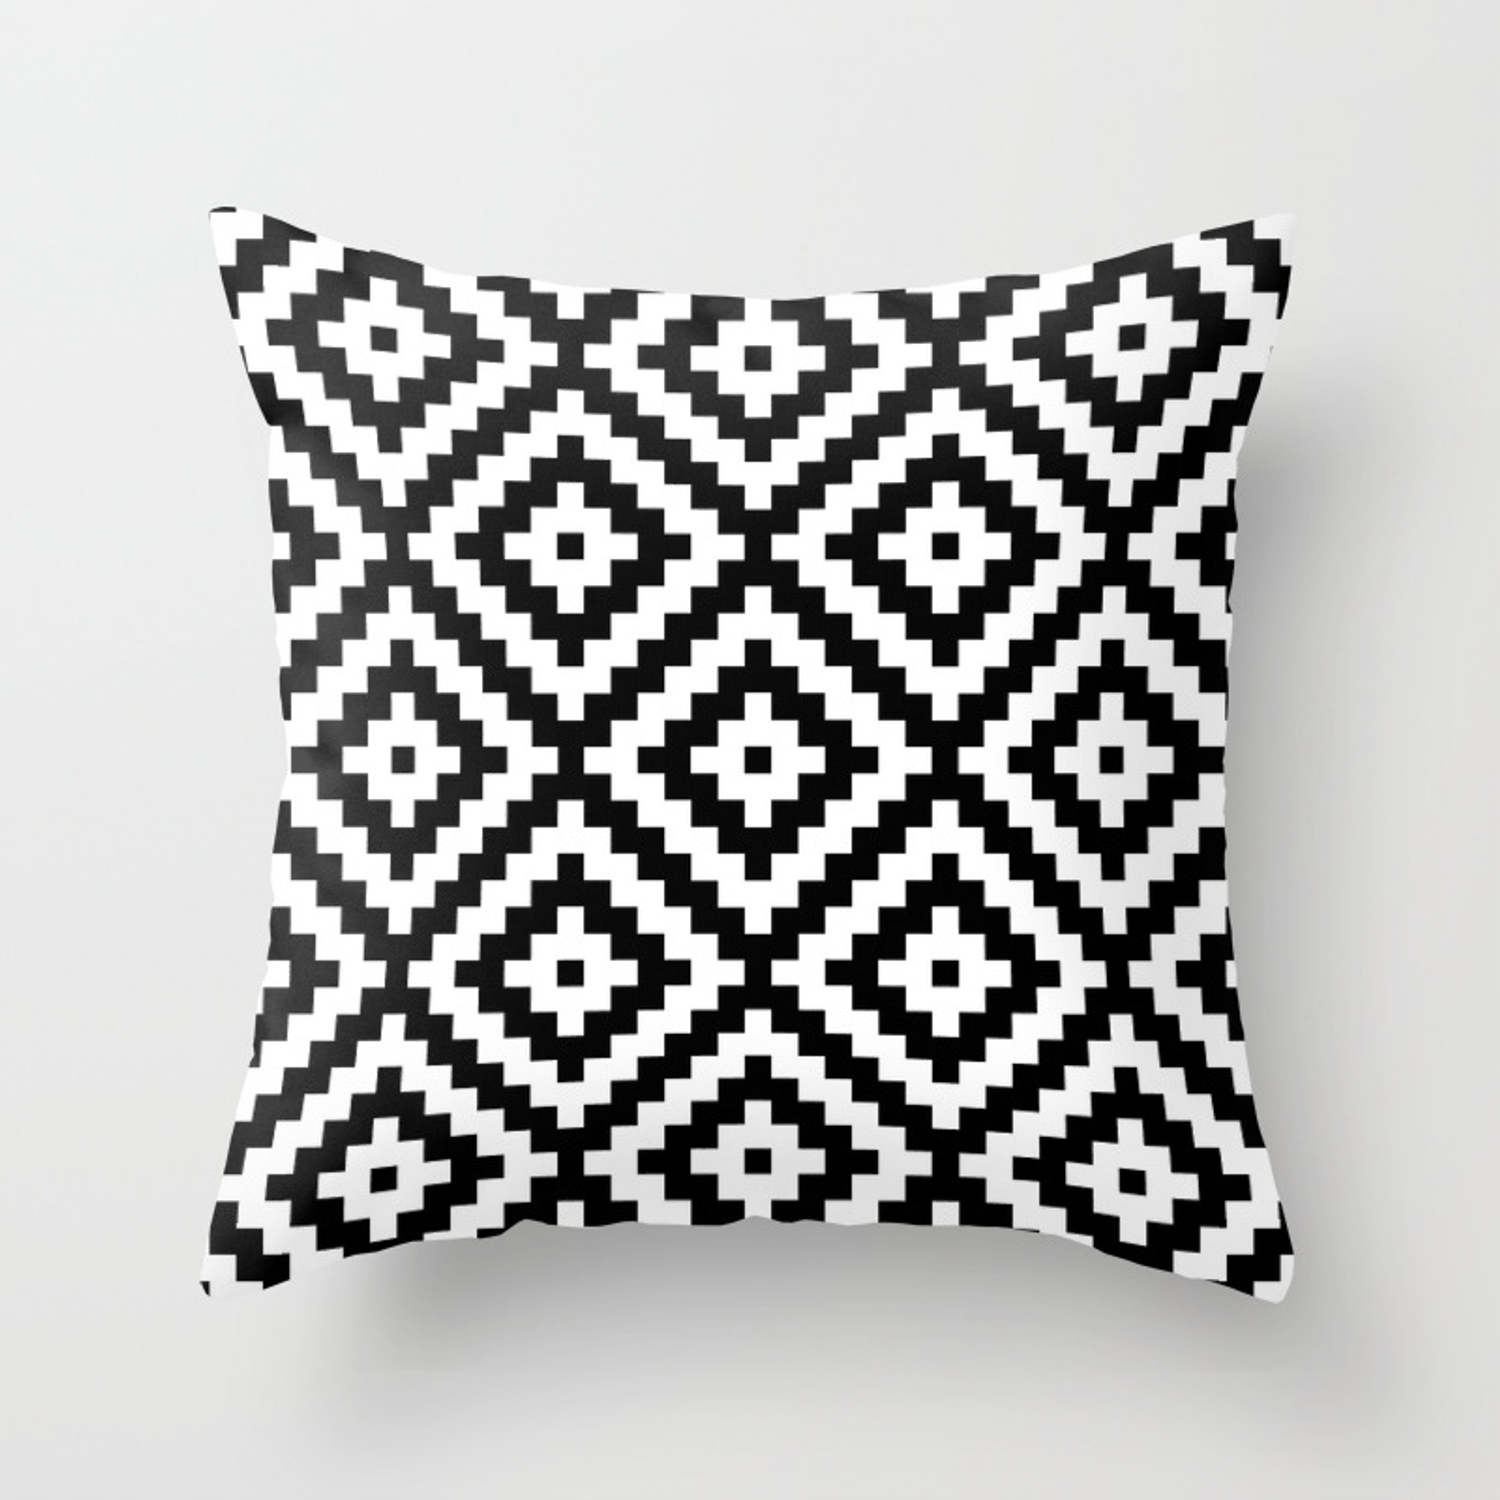 59fe8abe9 Aztec Block Symbol Ptn BW II Throw Pillow by nataliepaskell | Society6